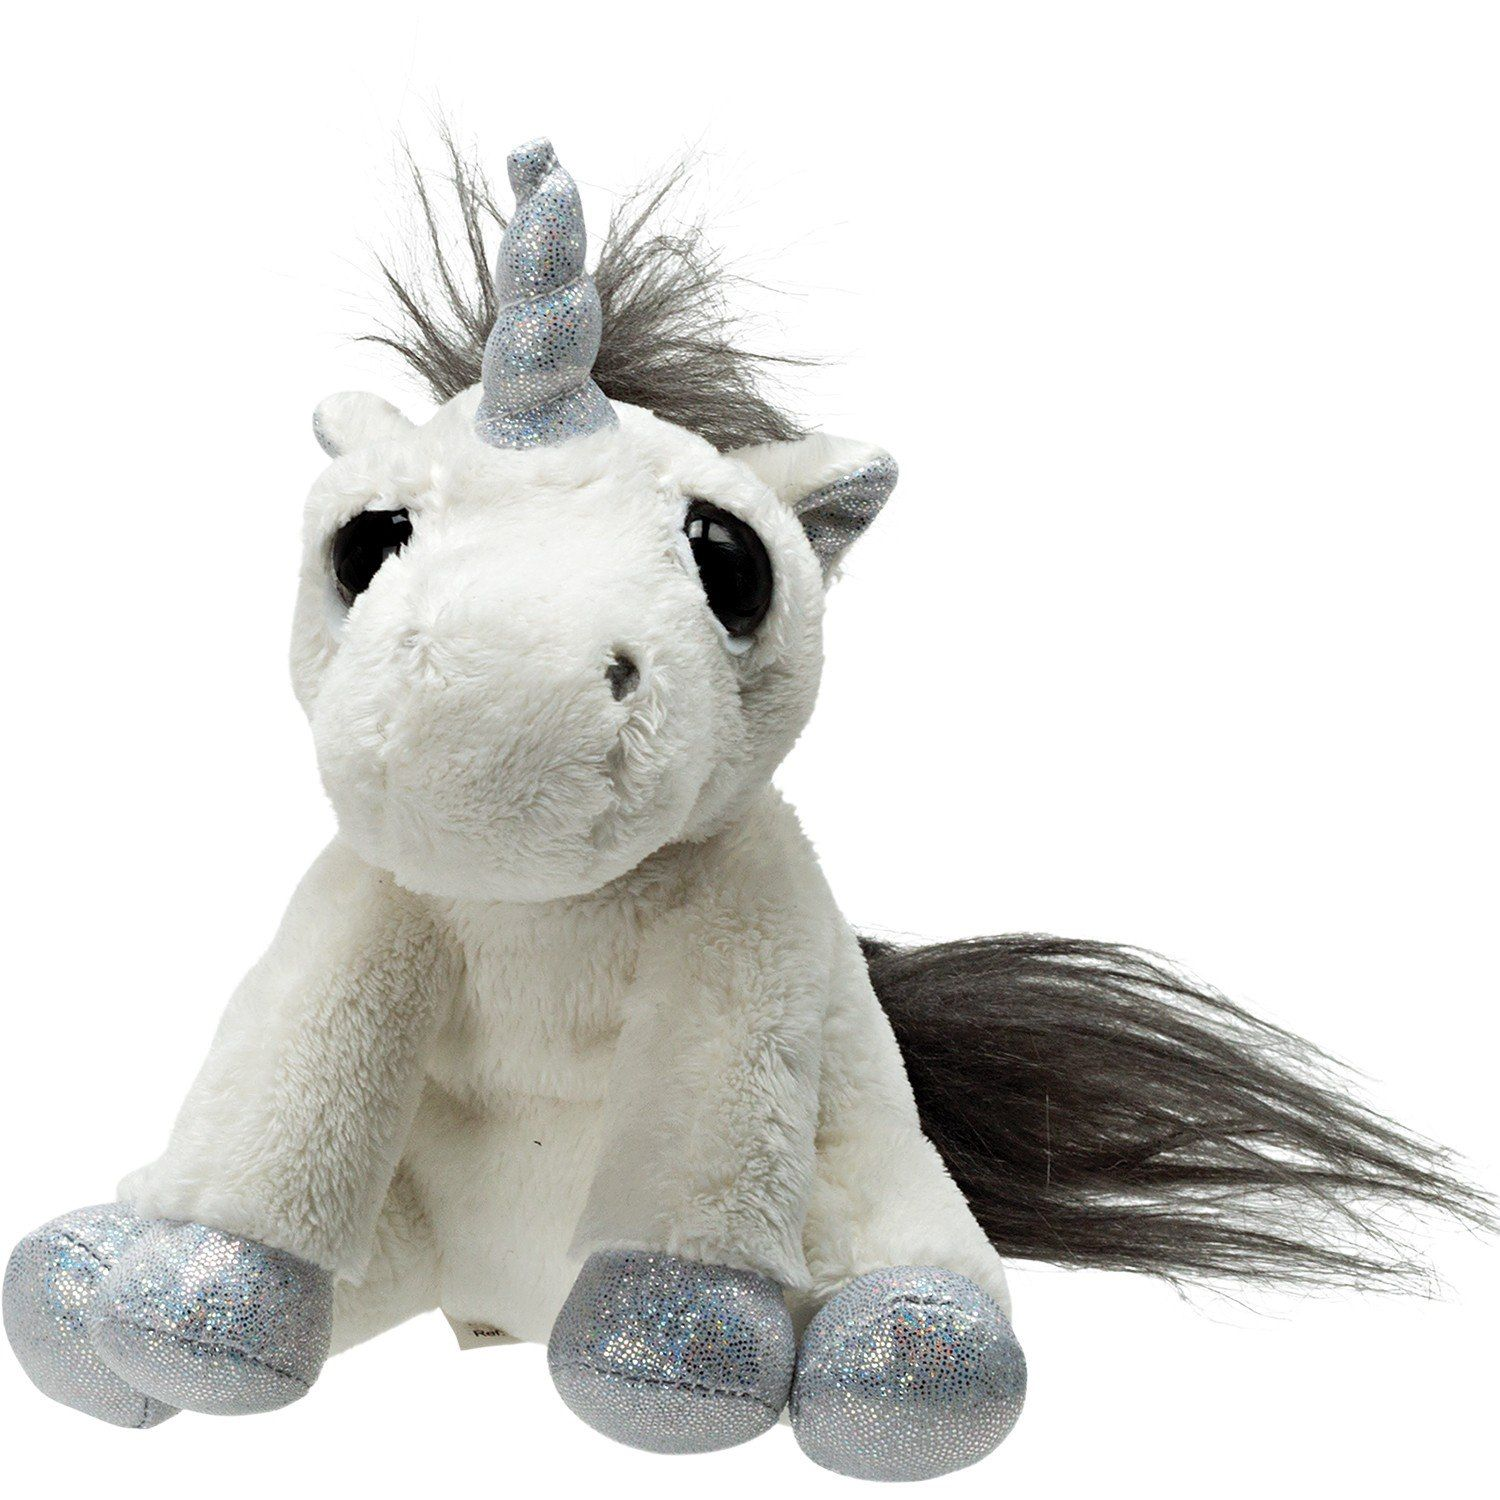 Lil Peepers Snowflake Small Unicorn Soft Toy Gifts Direct 2u With Images Soft Toy Toys Unicorn